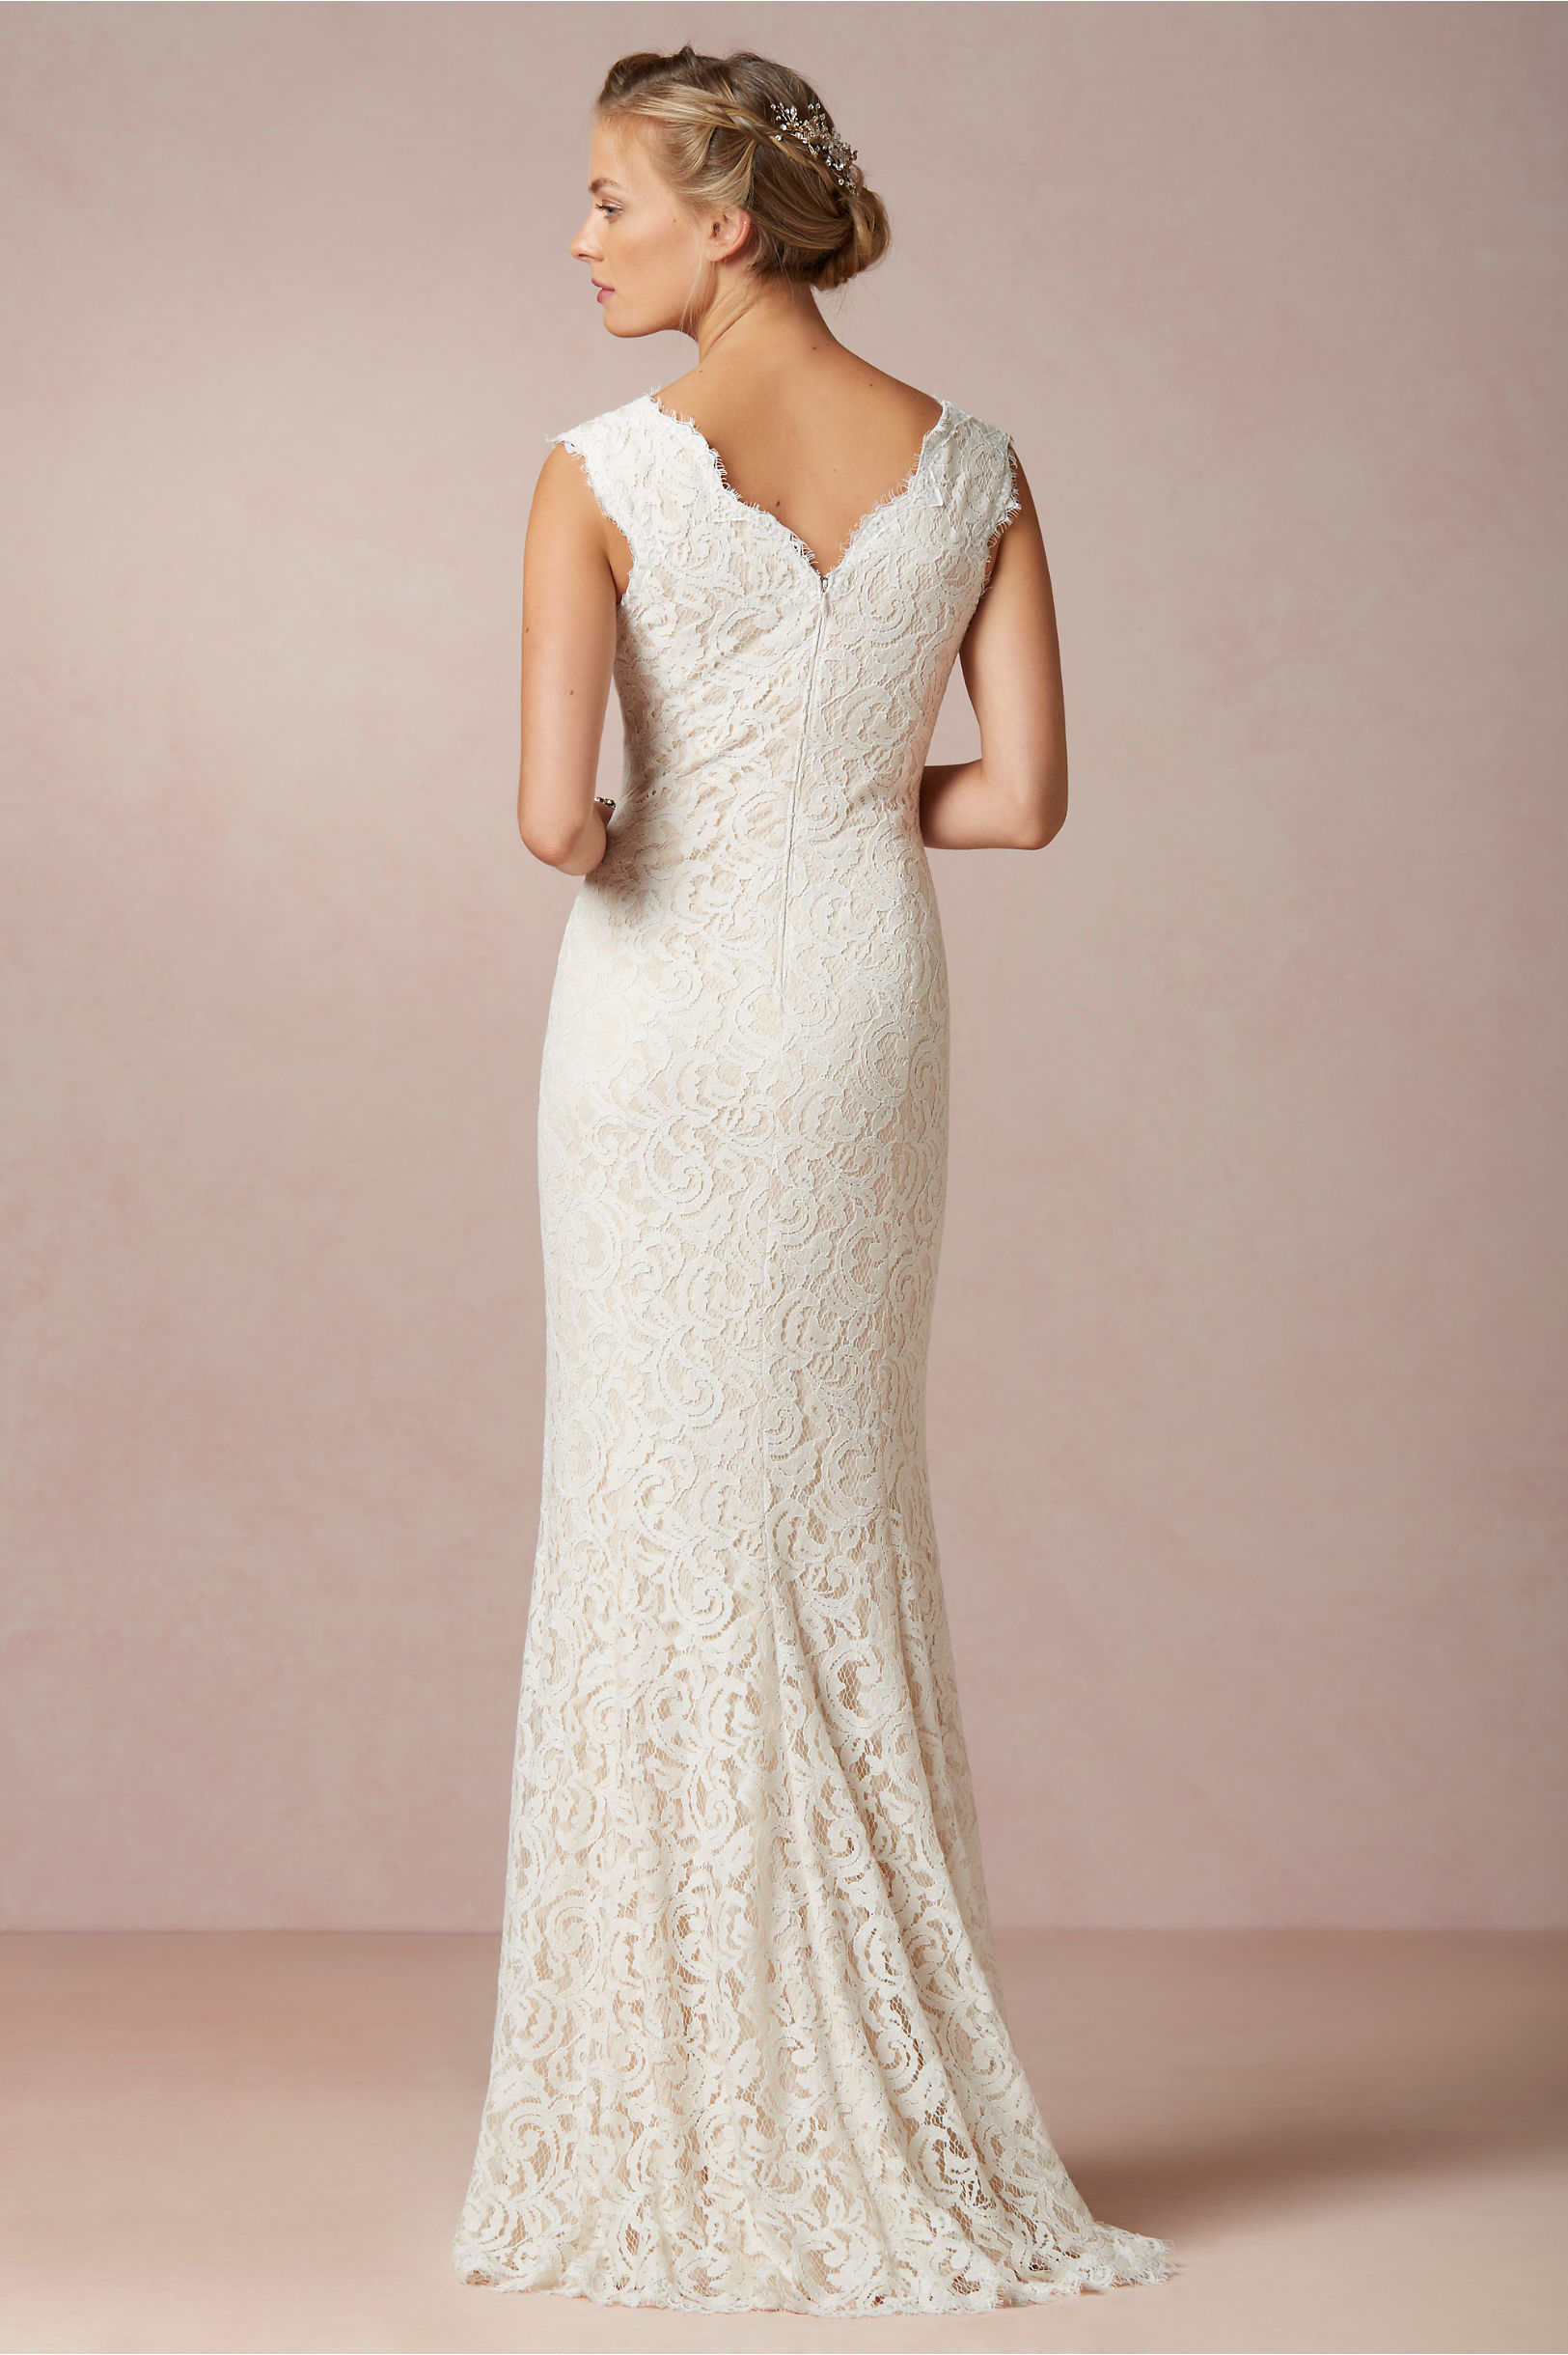 Margeaux Gown in Sale | BHLDN